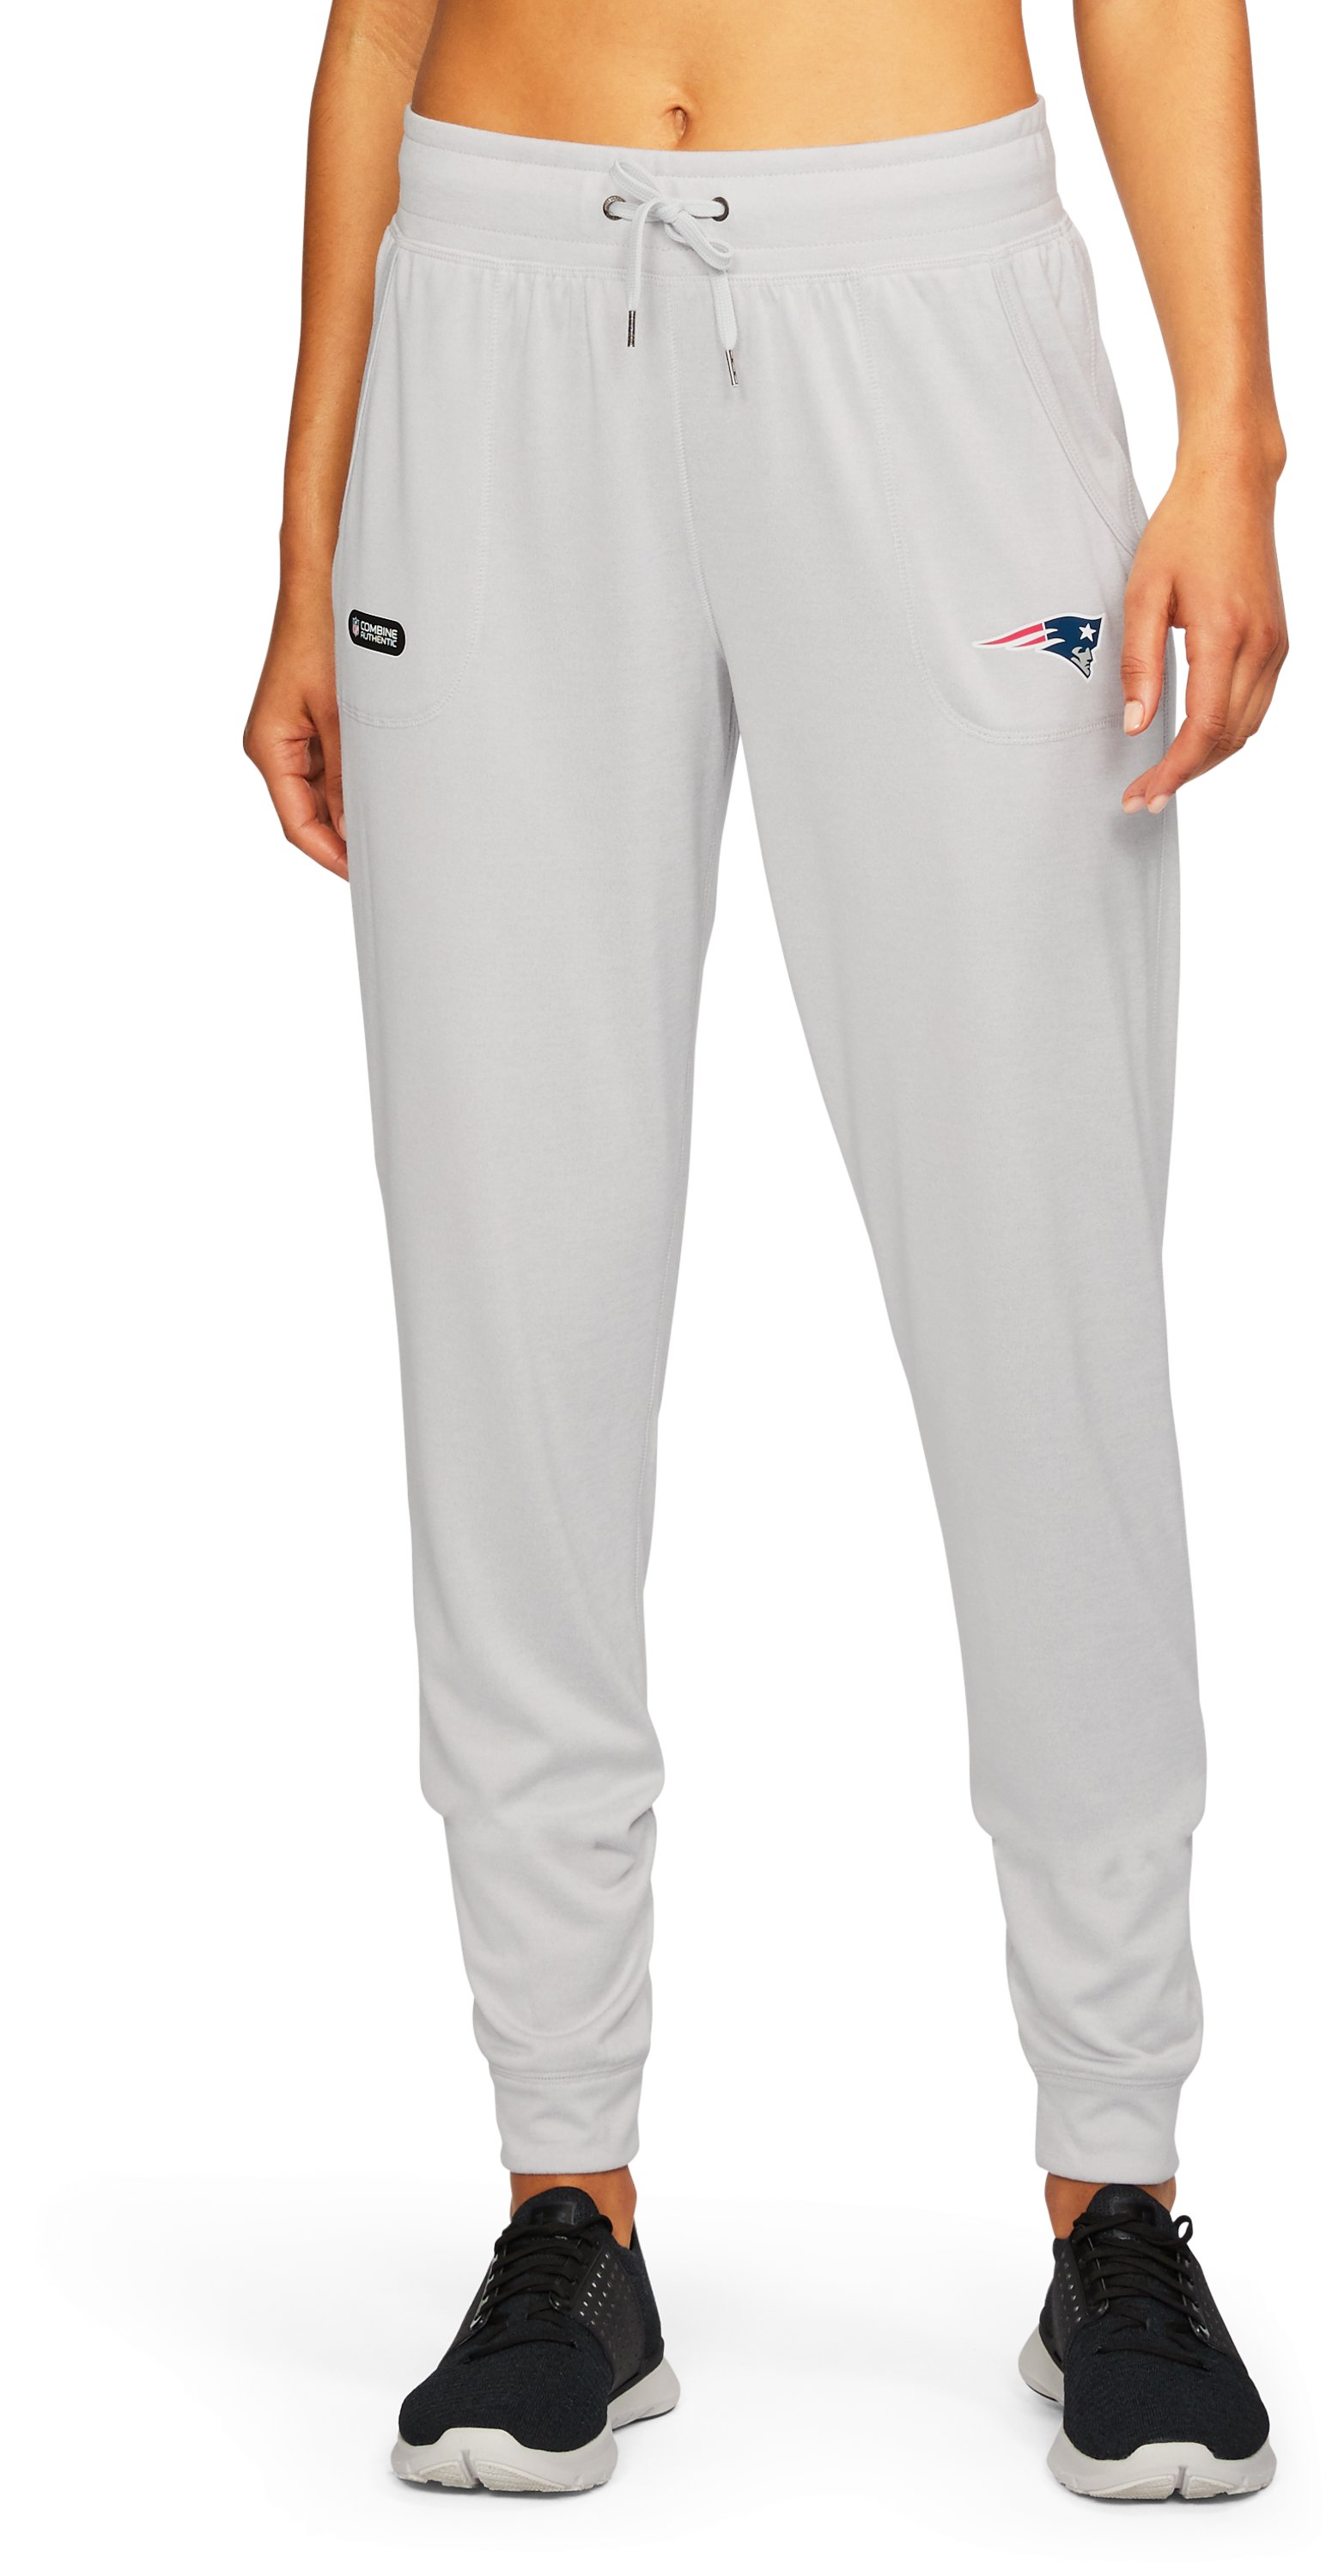 Women's NFL Combine Authentic UA Tech™ Pants, NFL_NEW ENGLAND PATRIOTS_GLACIER GRAY, undefined